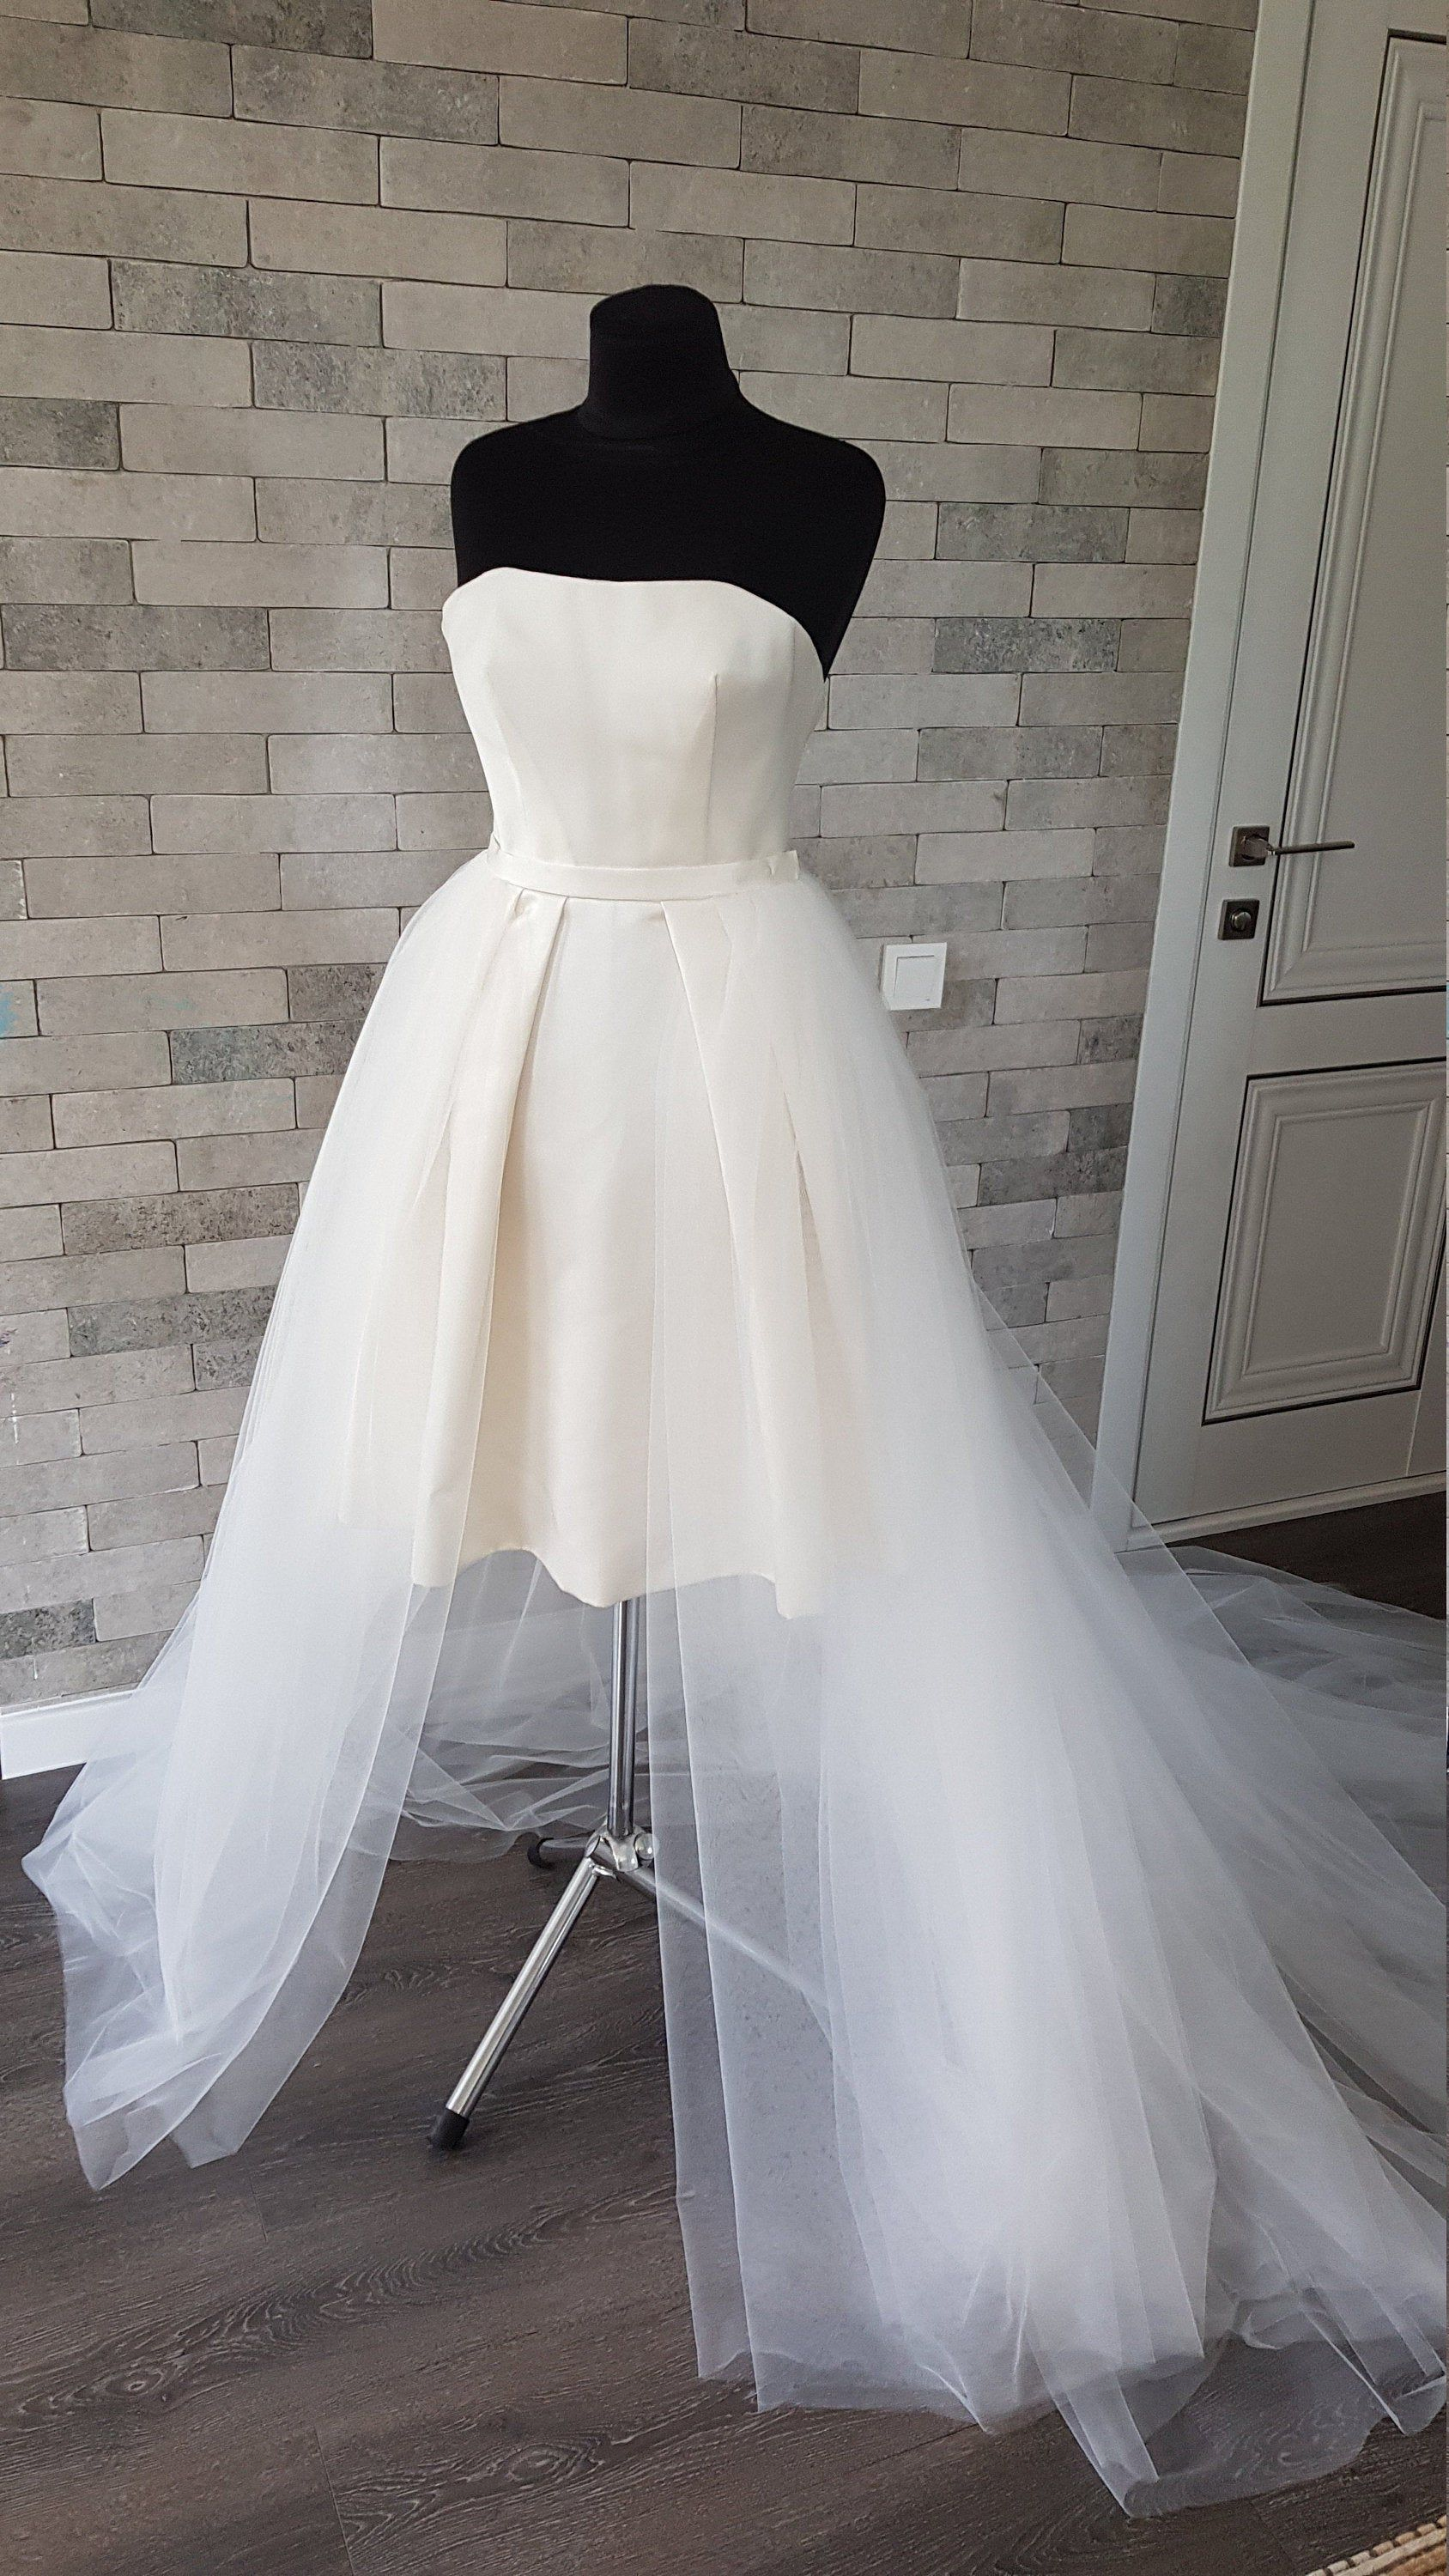 Extra long detachable tulle train removable tulle train